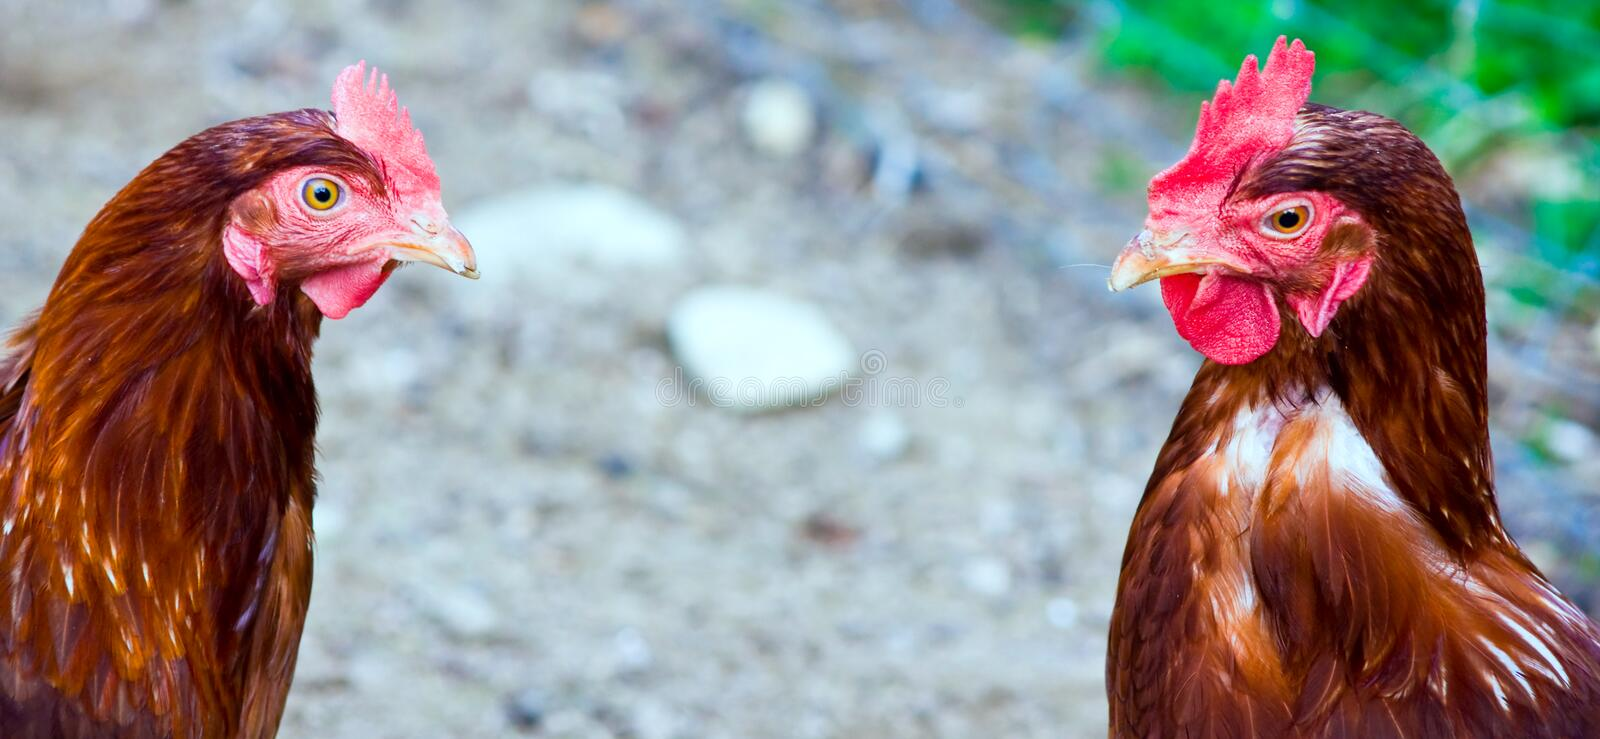 And hen. Close up on an organically raised, free range chicken royalty free stock photo